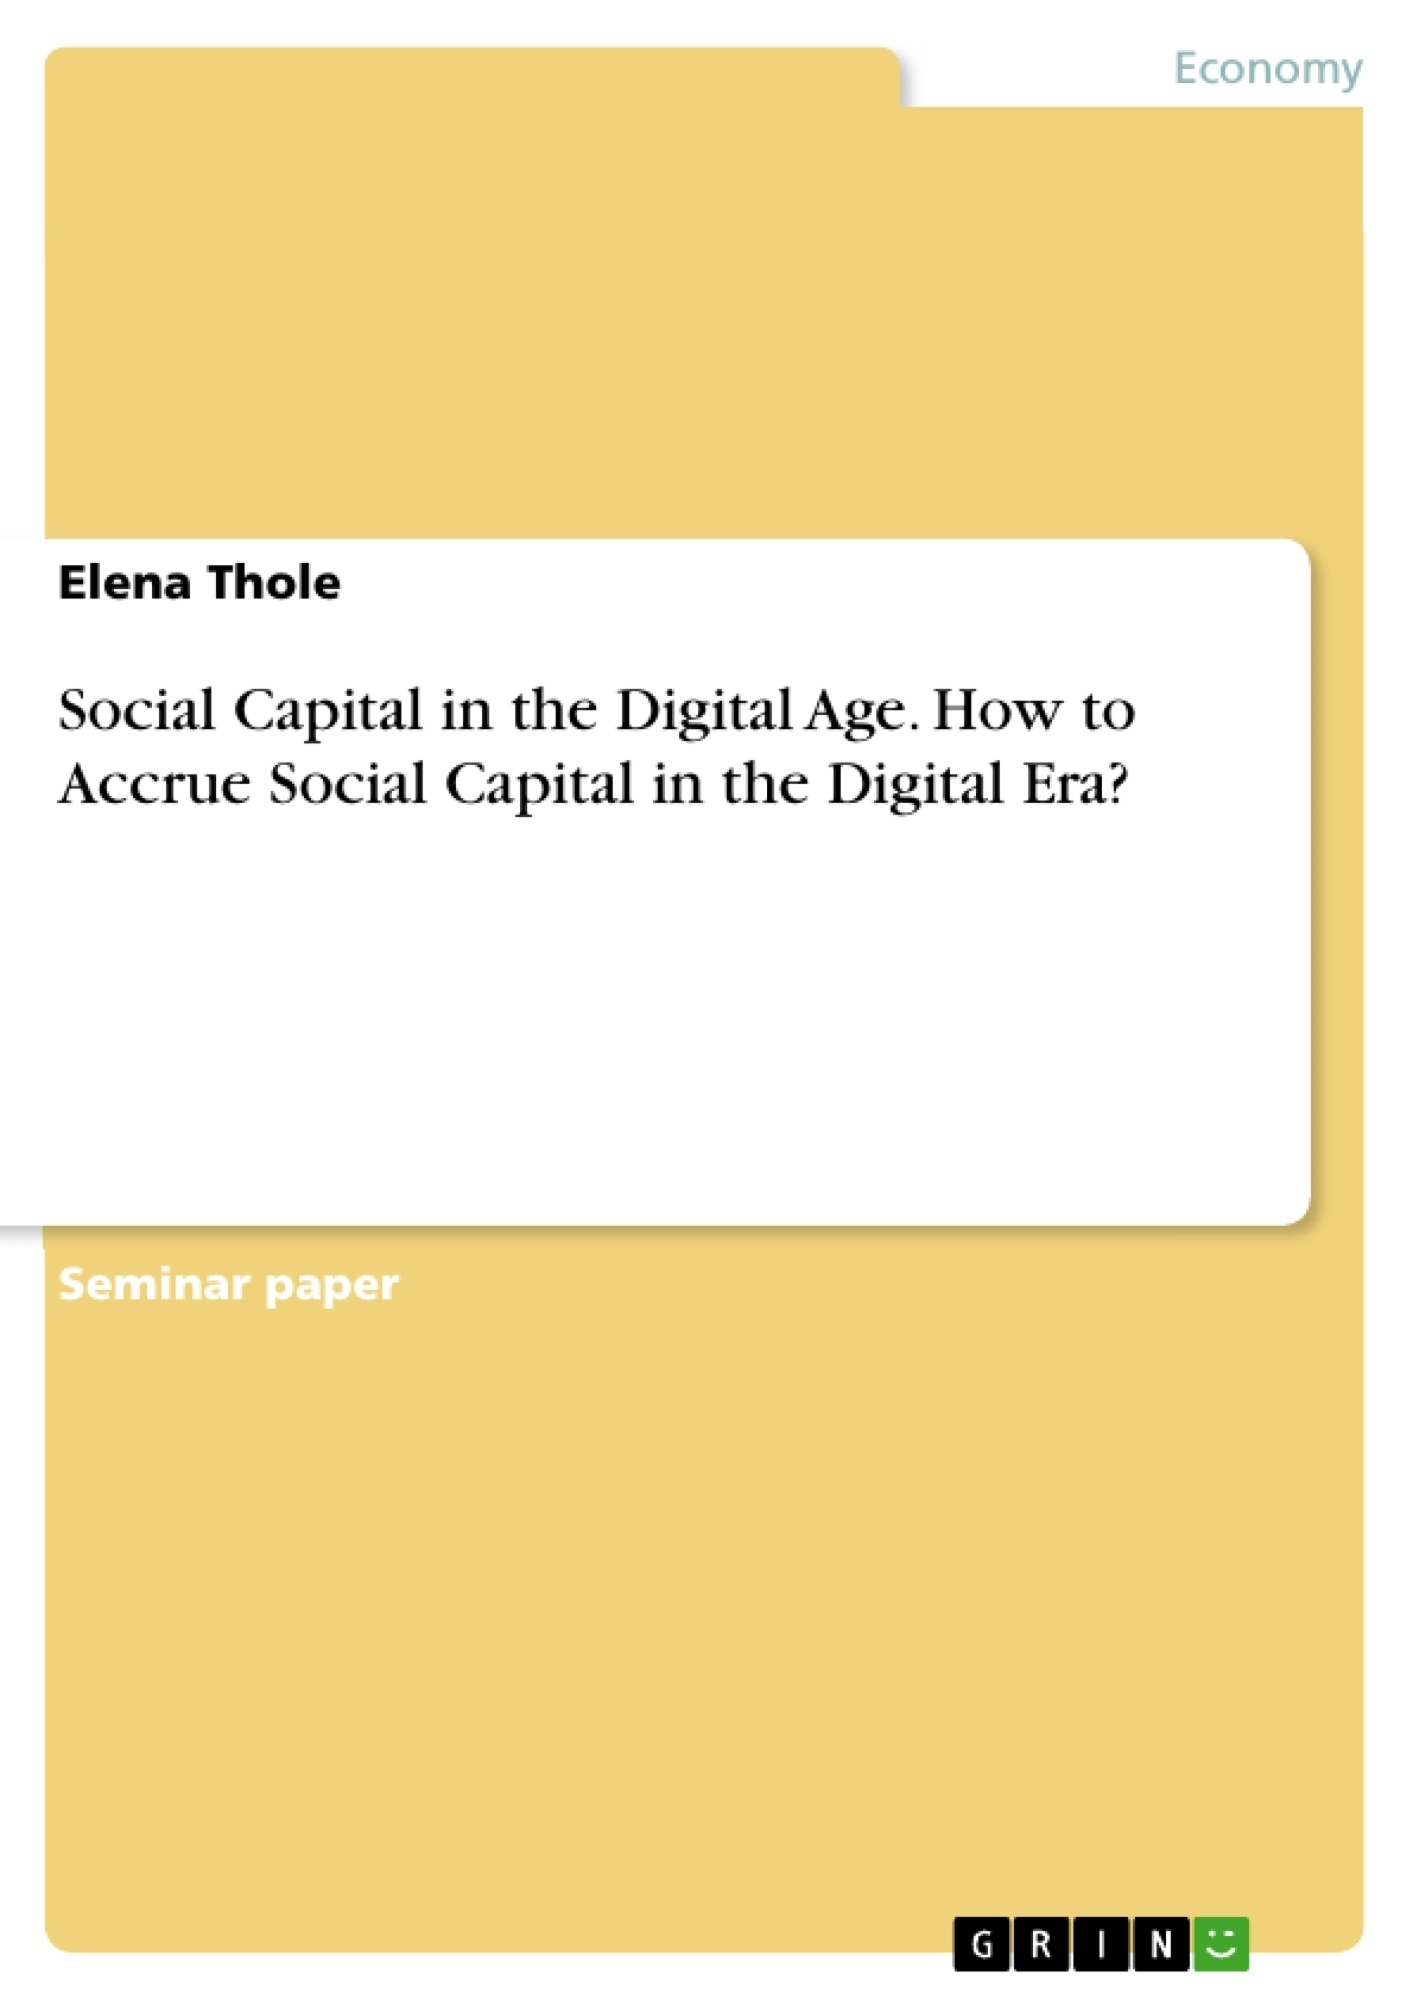 Title: Social Capital in the Digital Age. How to Accrue Social Capital in the Digital Era?